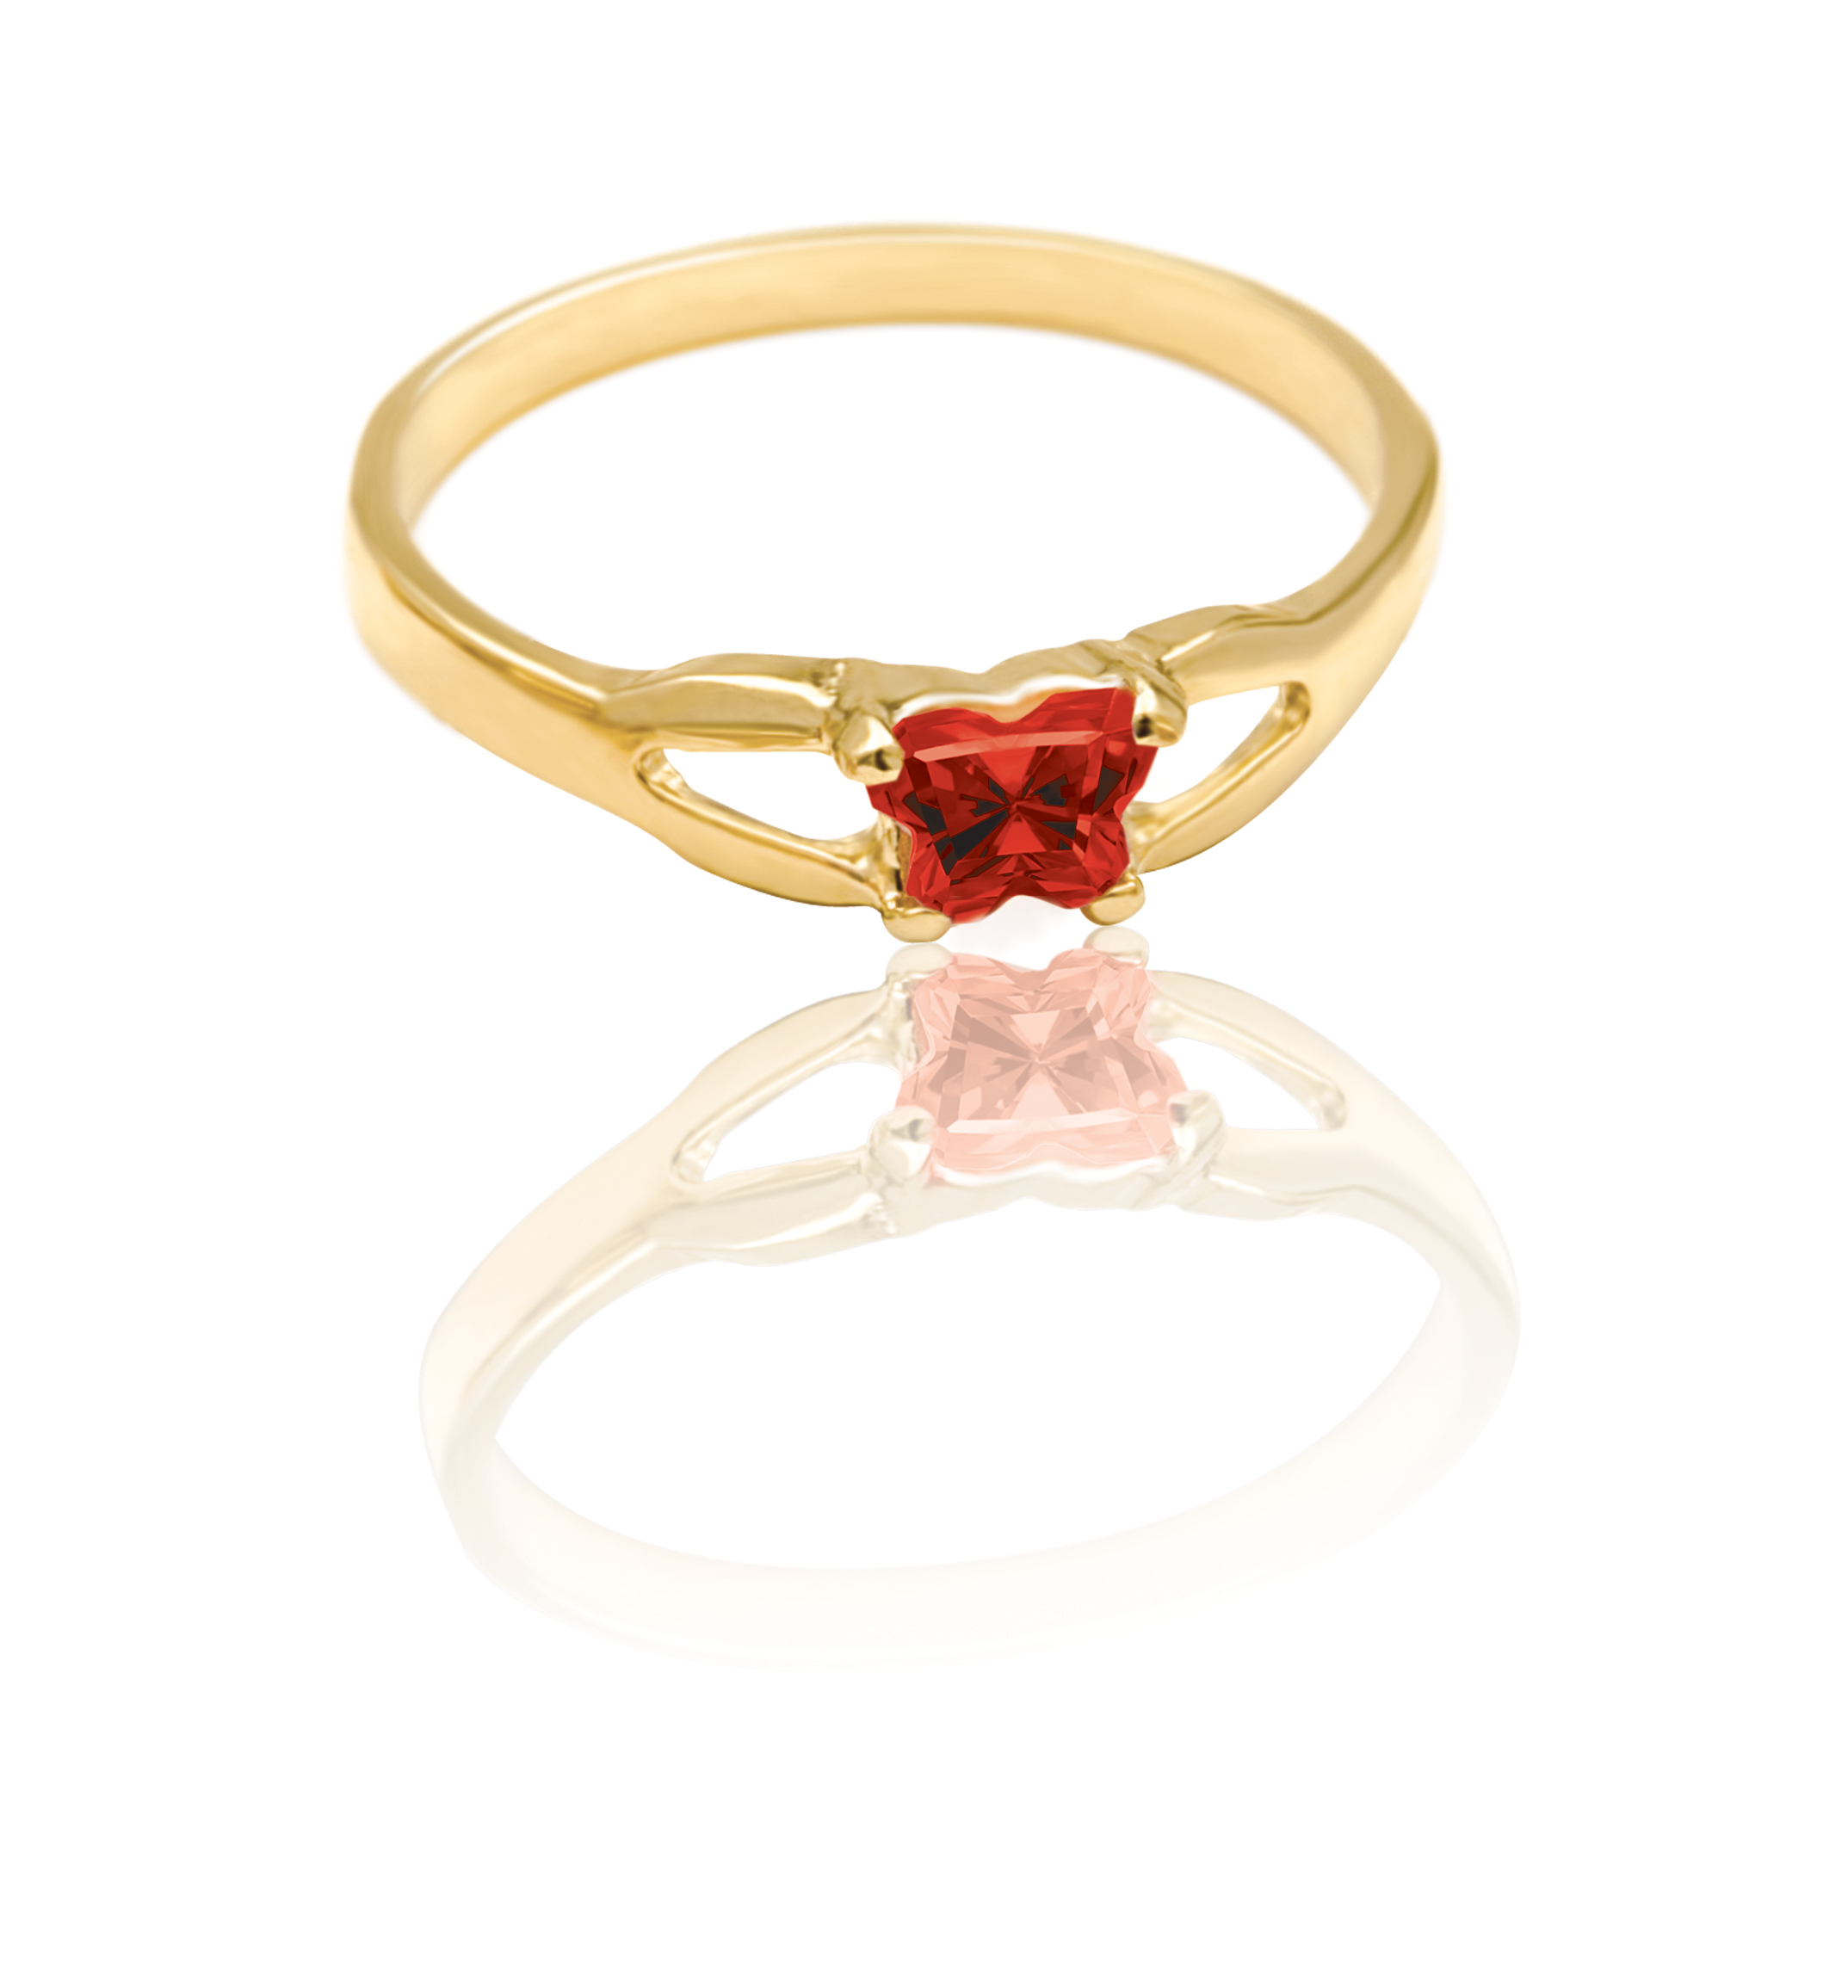 ring for child - 10K yellow Gold & Dark red cubic zirconia (month of January)*